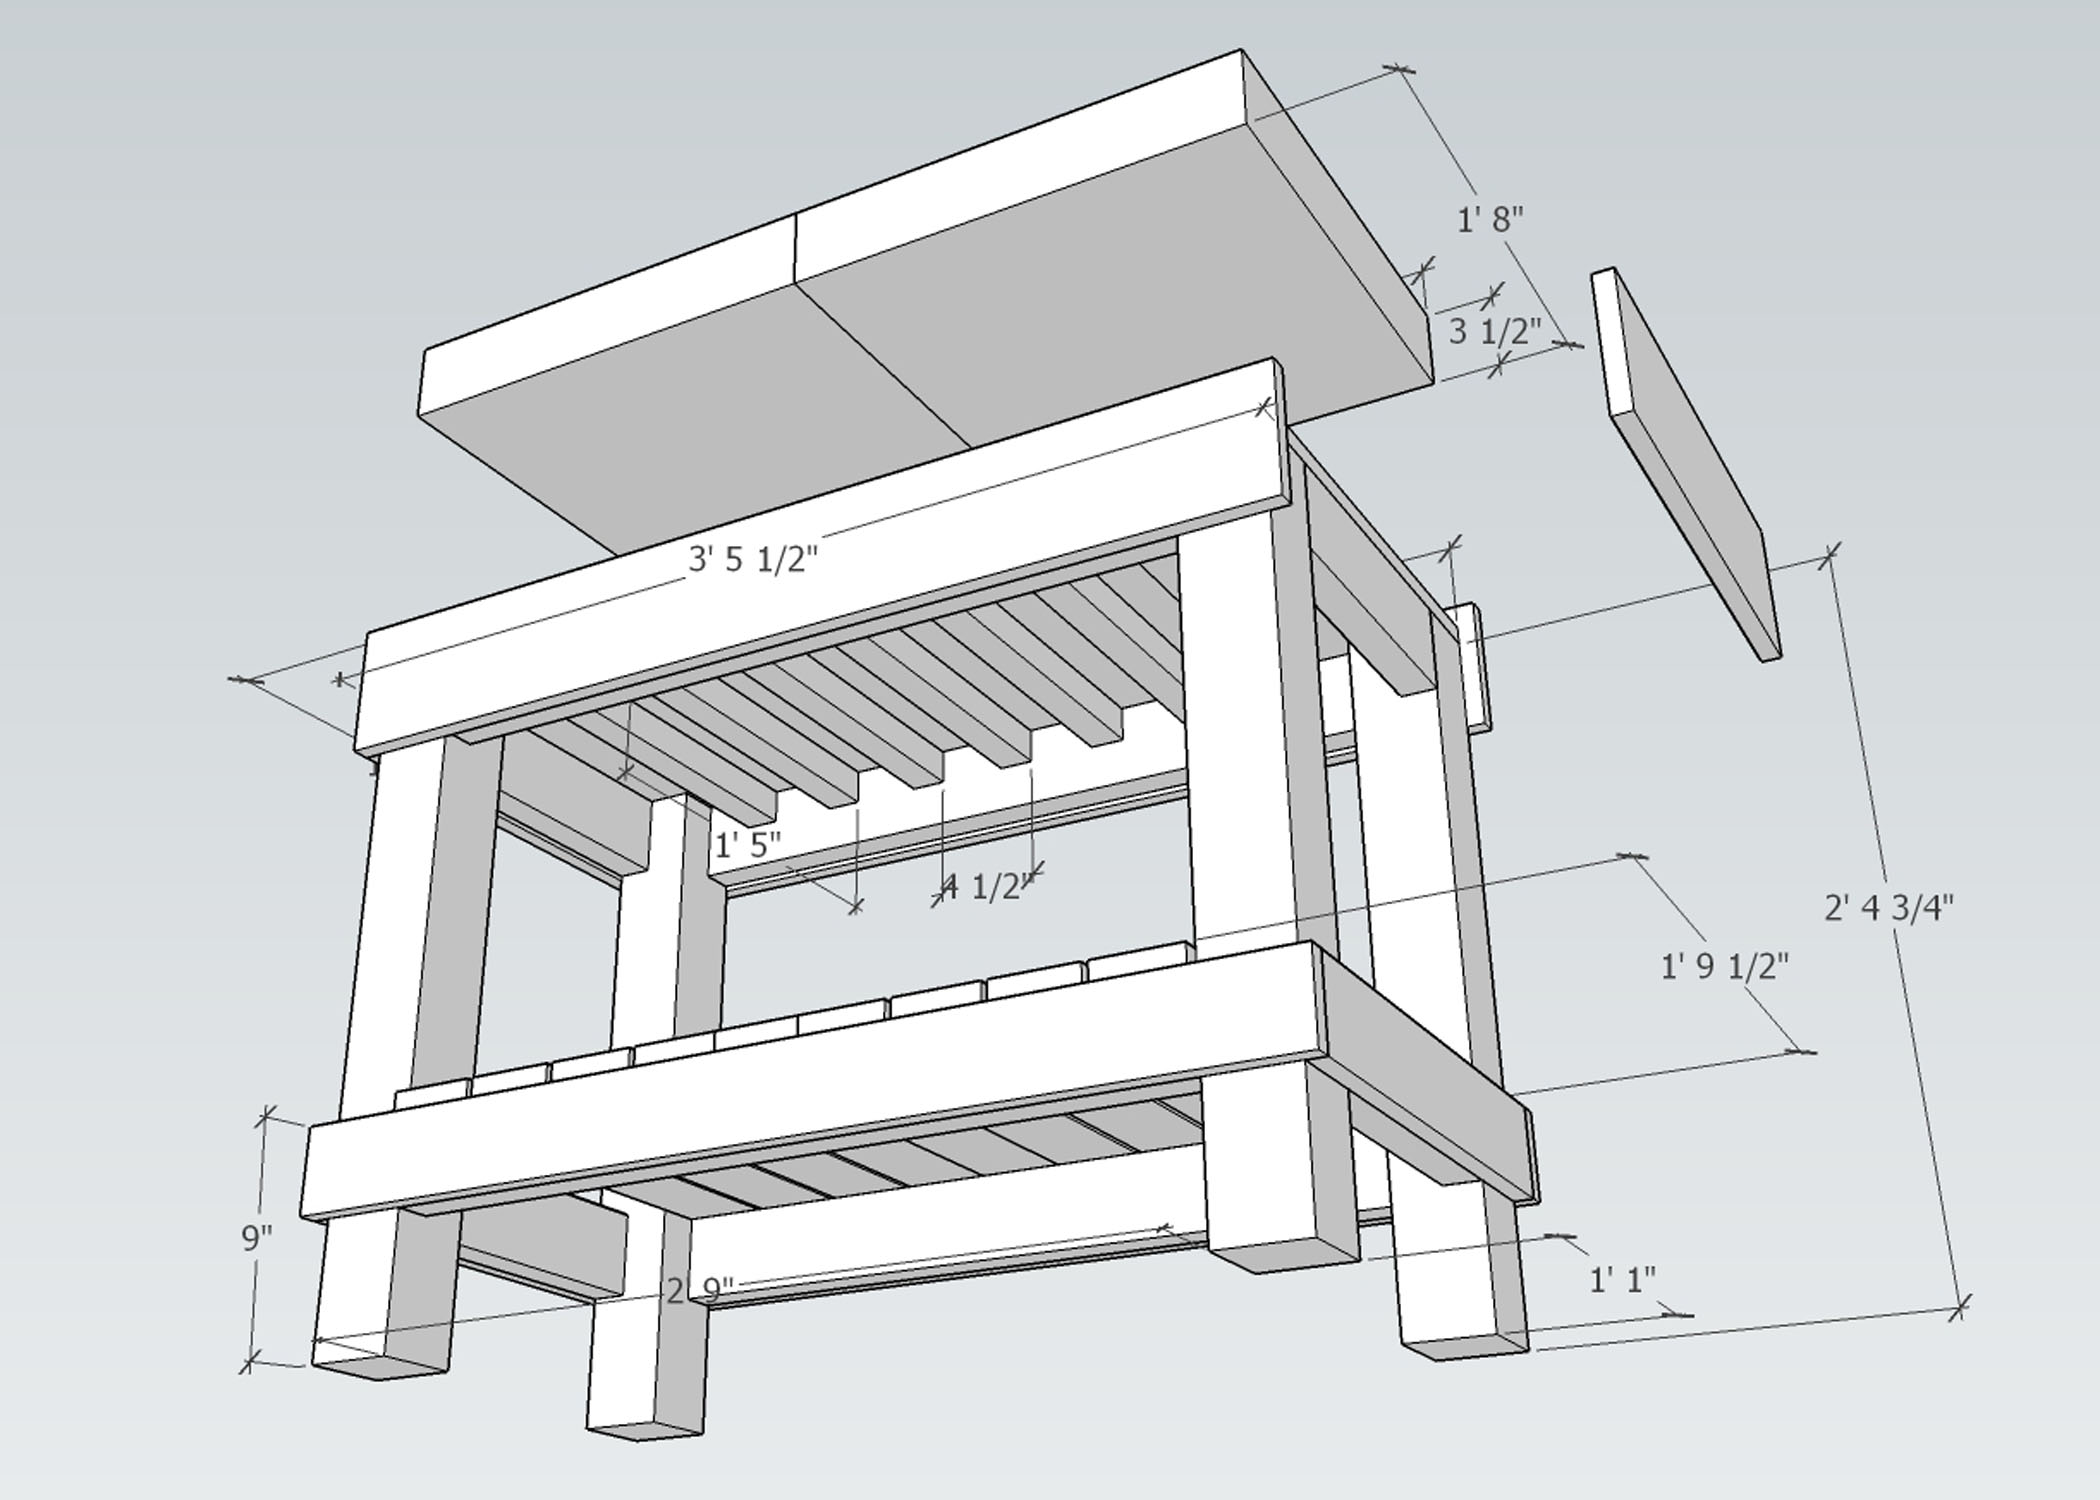 Picture of SketchUp Model